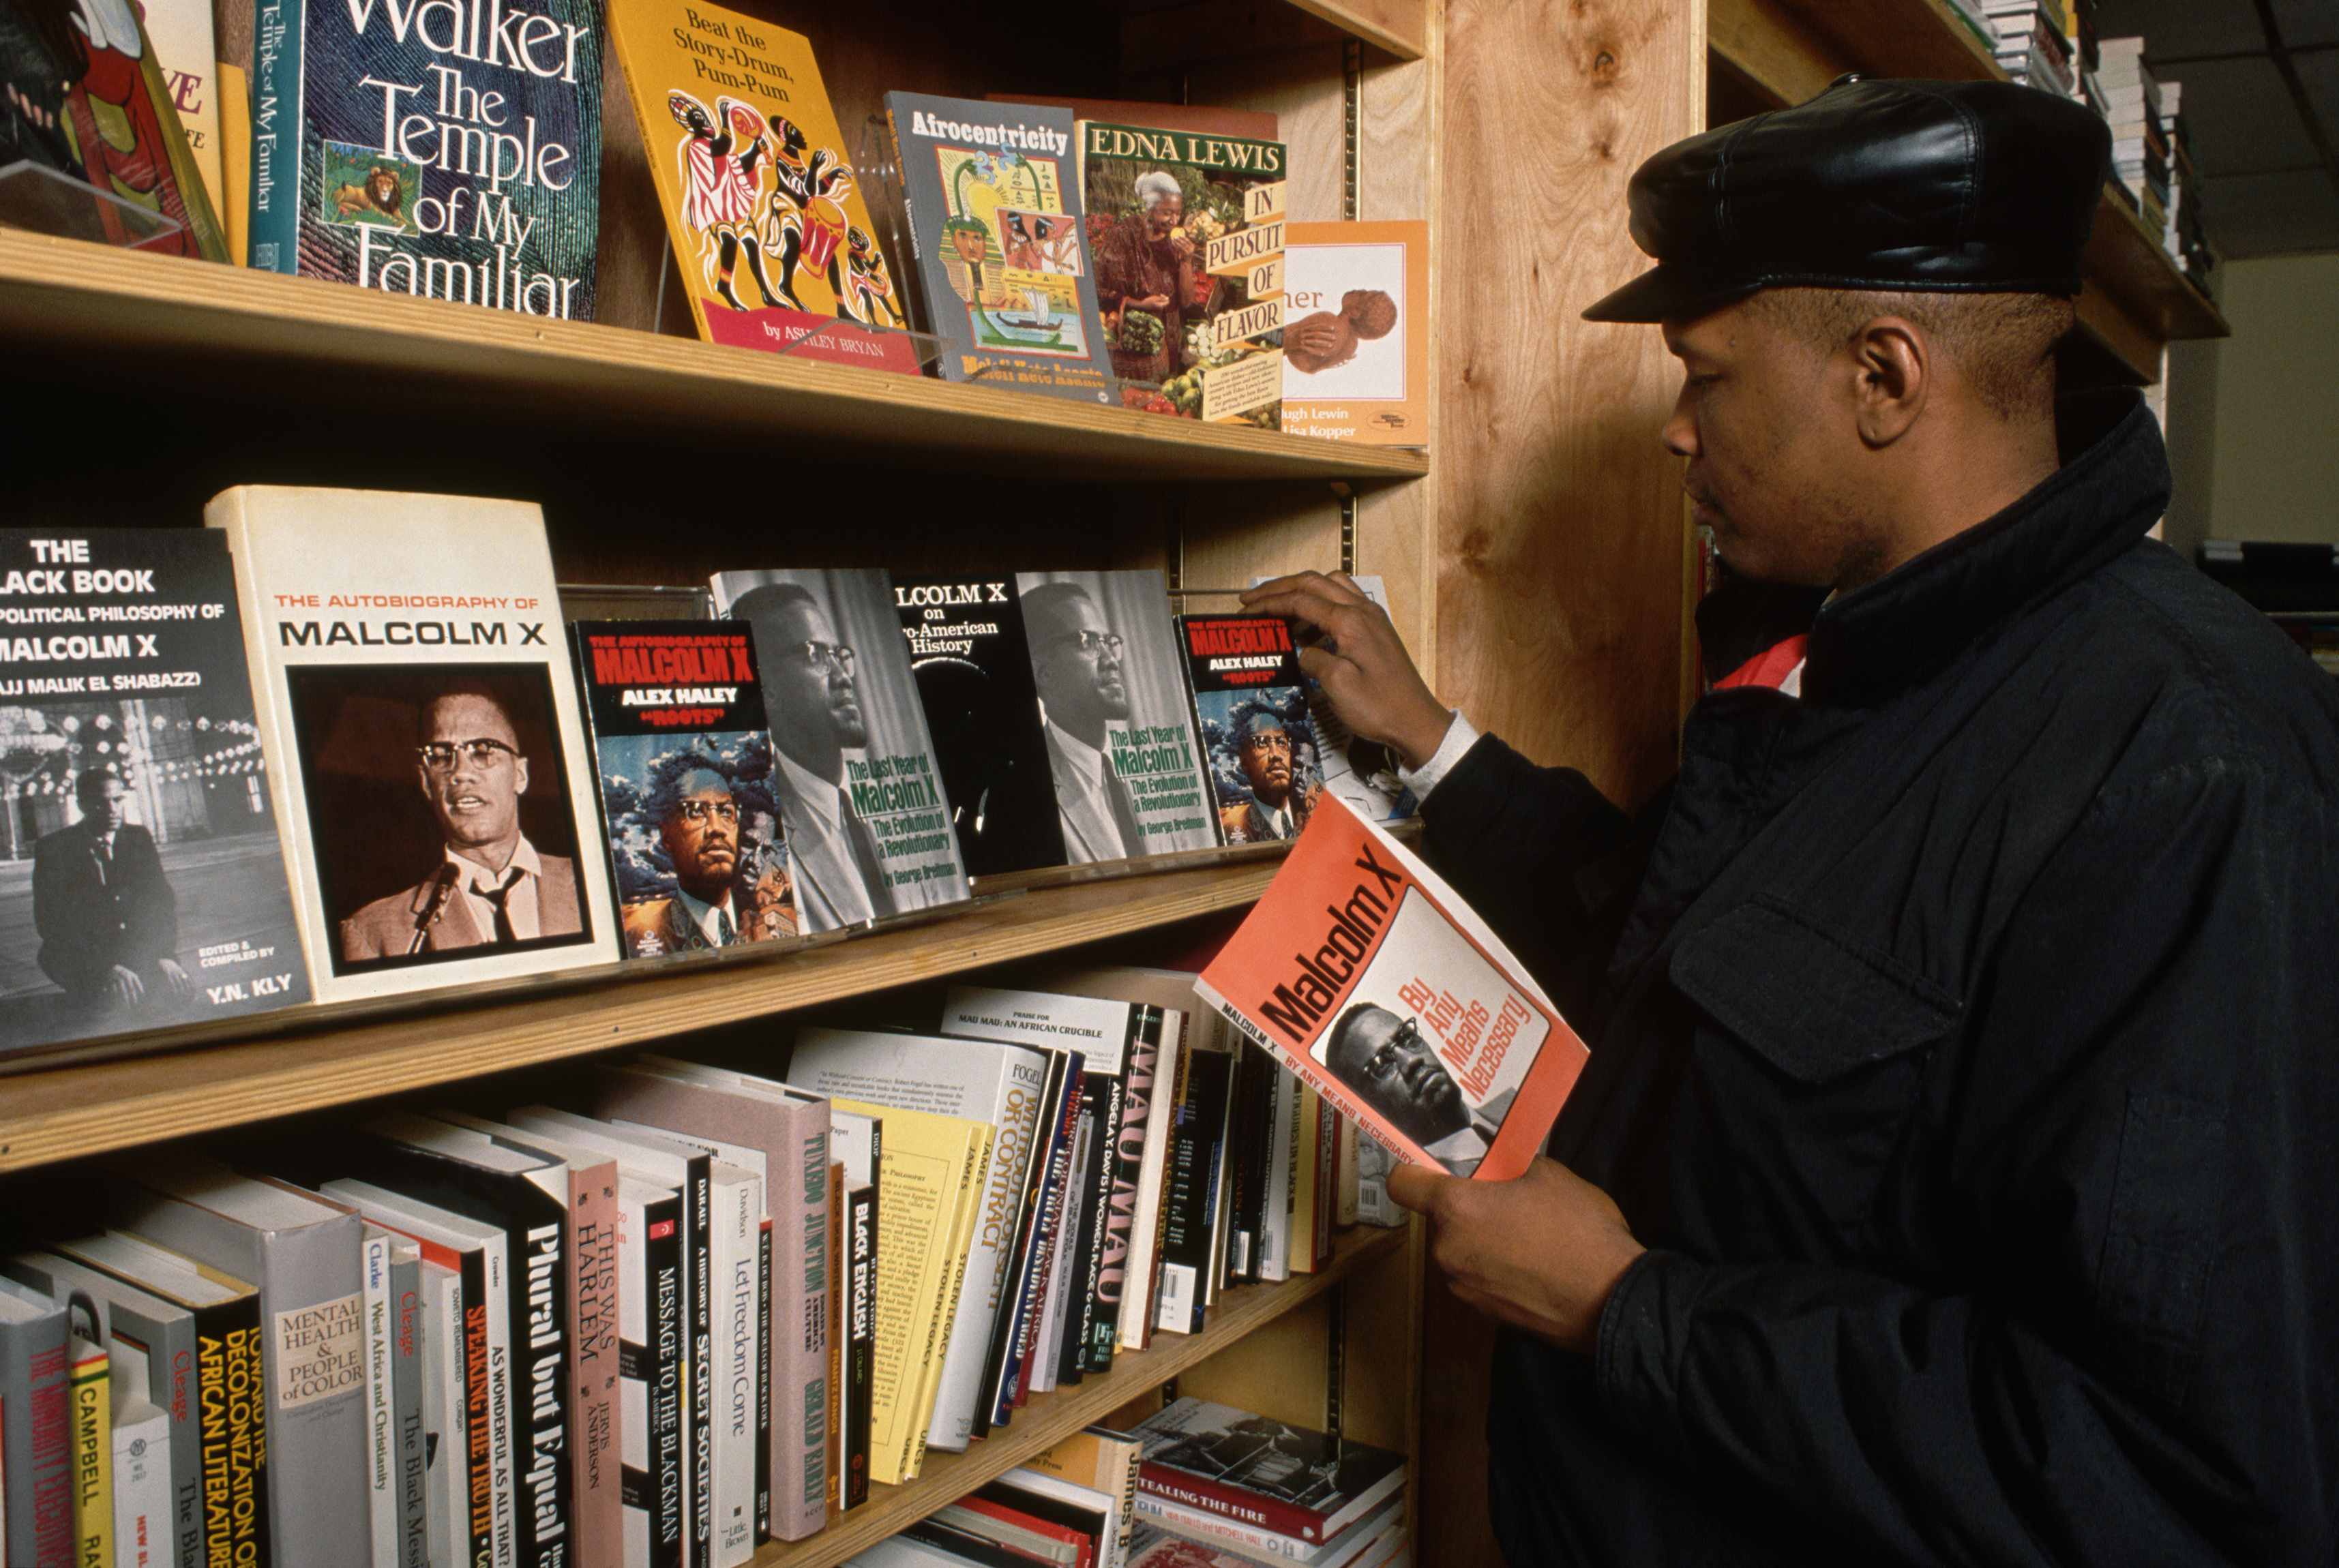 Man Looking at Malcolm X Books